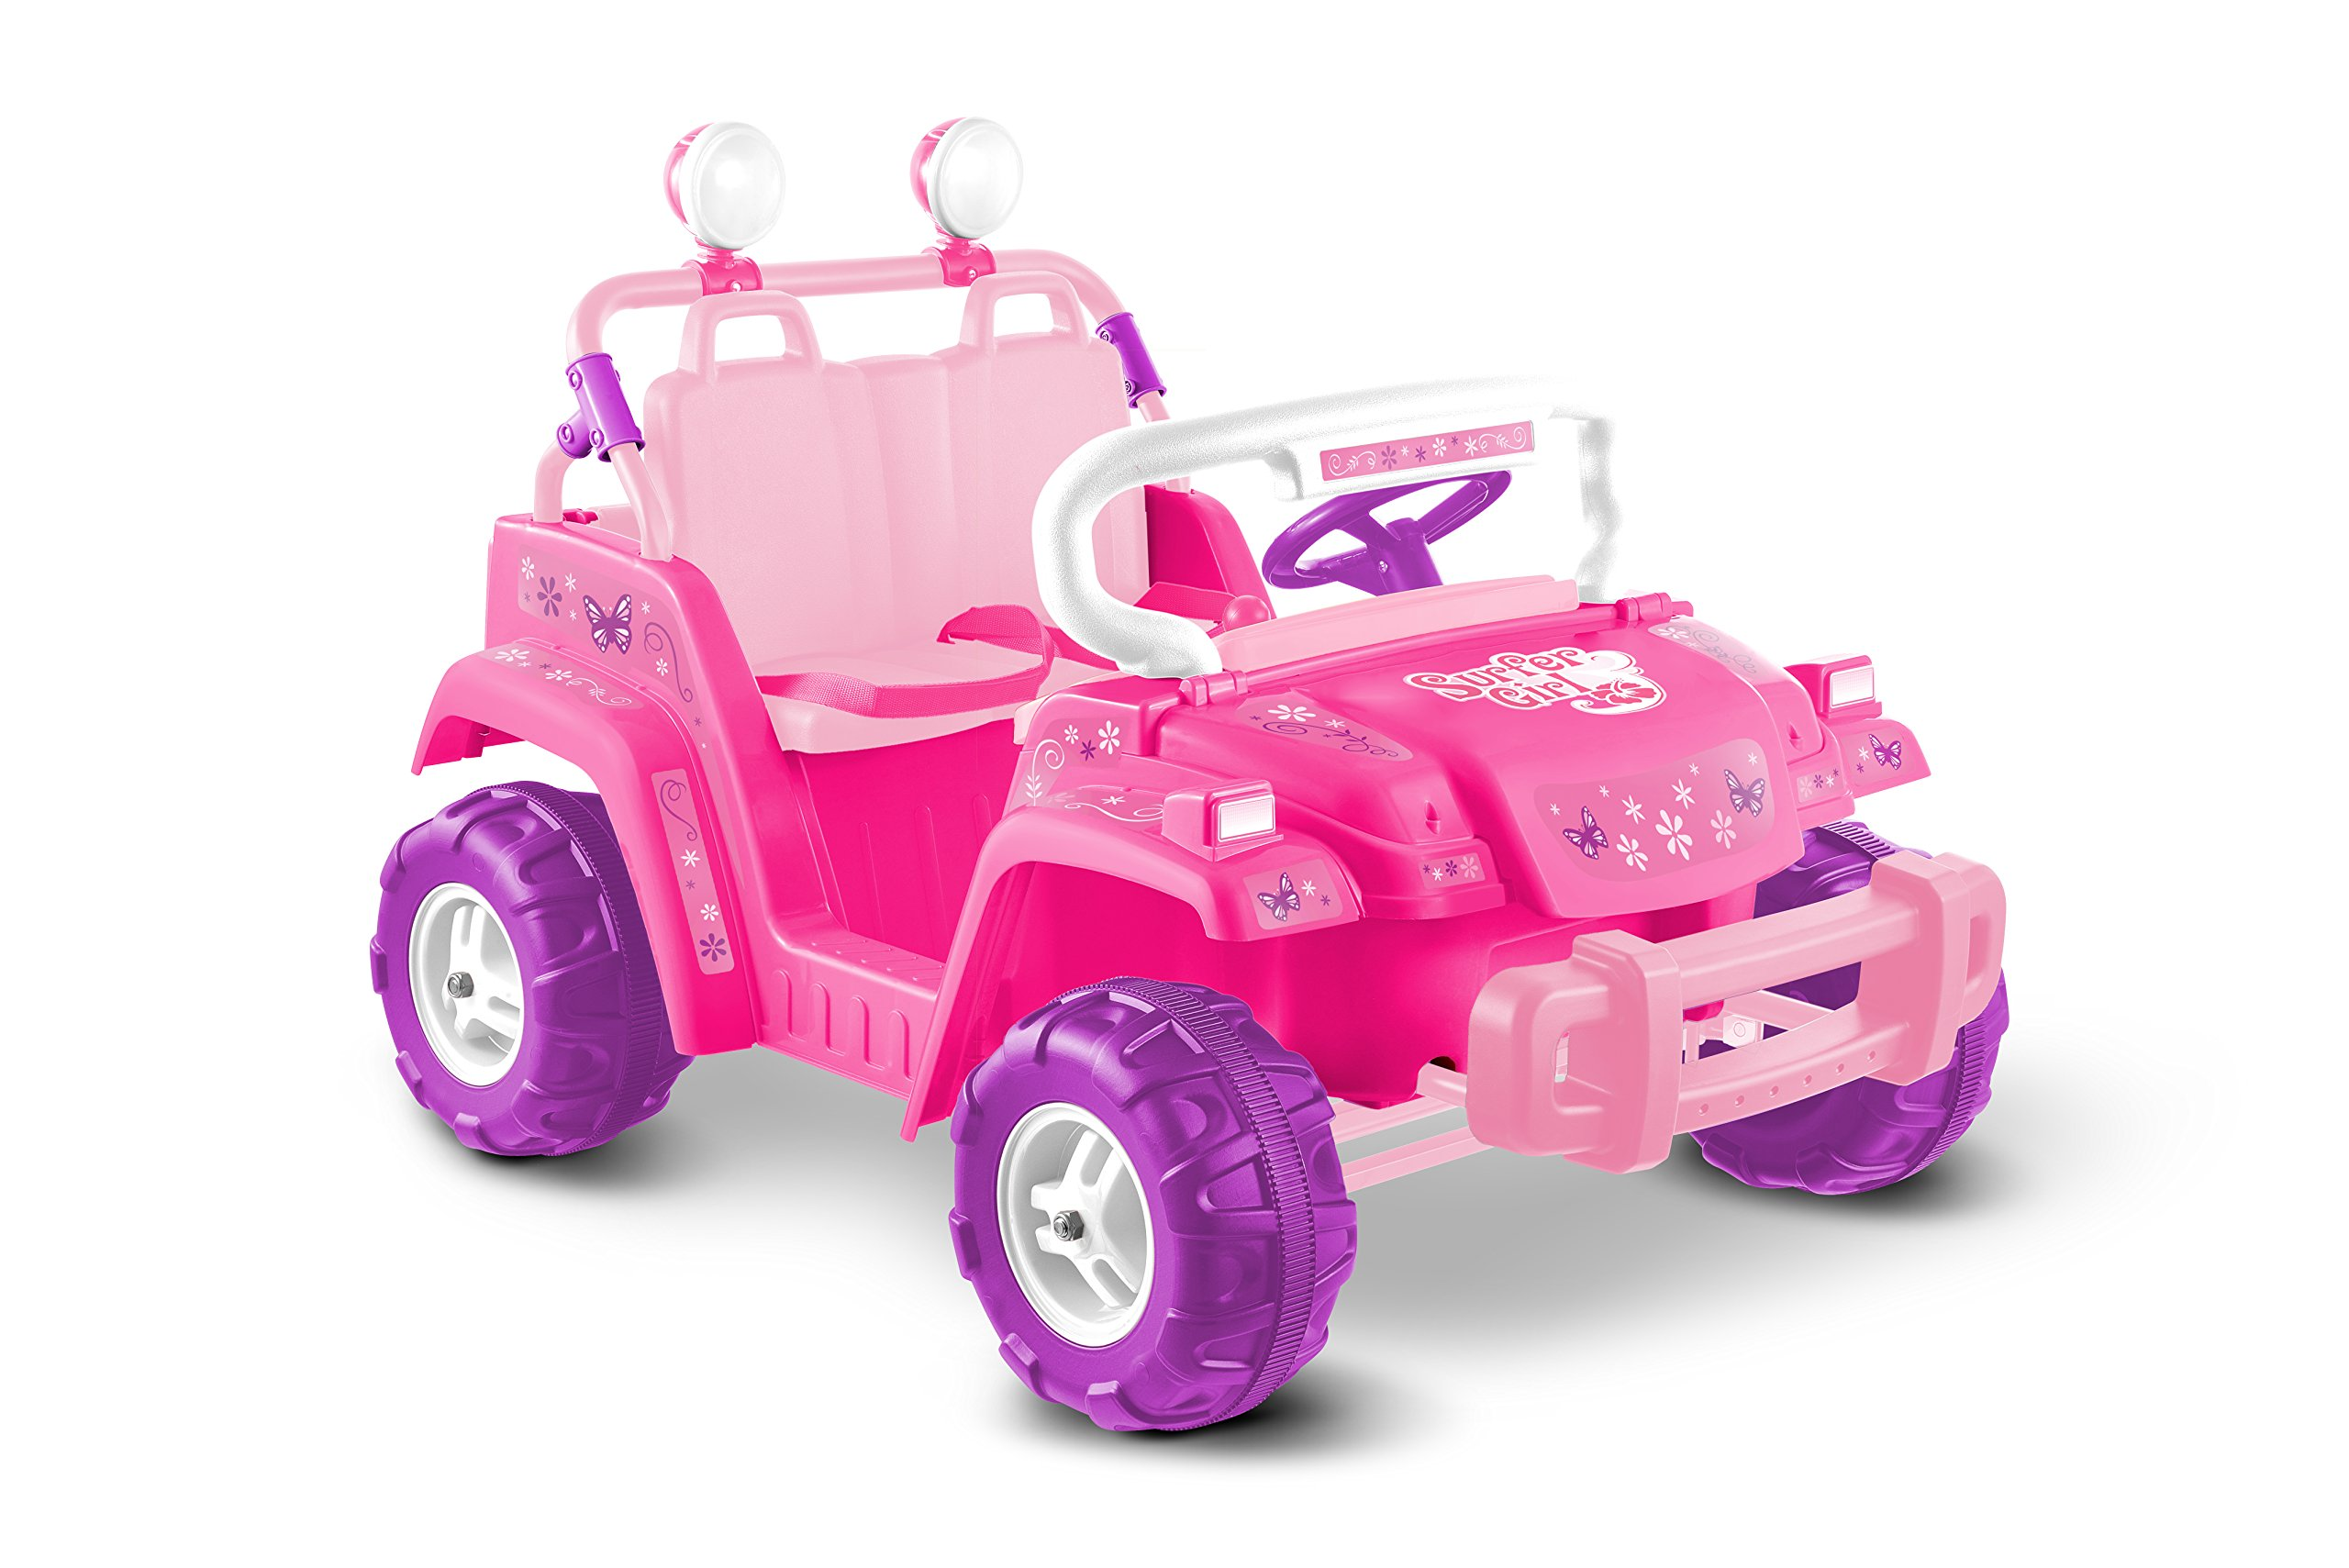 National Products 12V Surfer Girl Battery Operated Ride-on by National Products